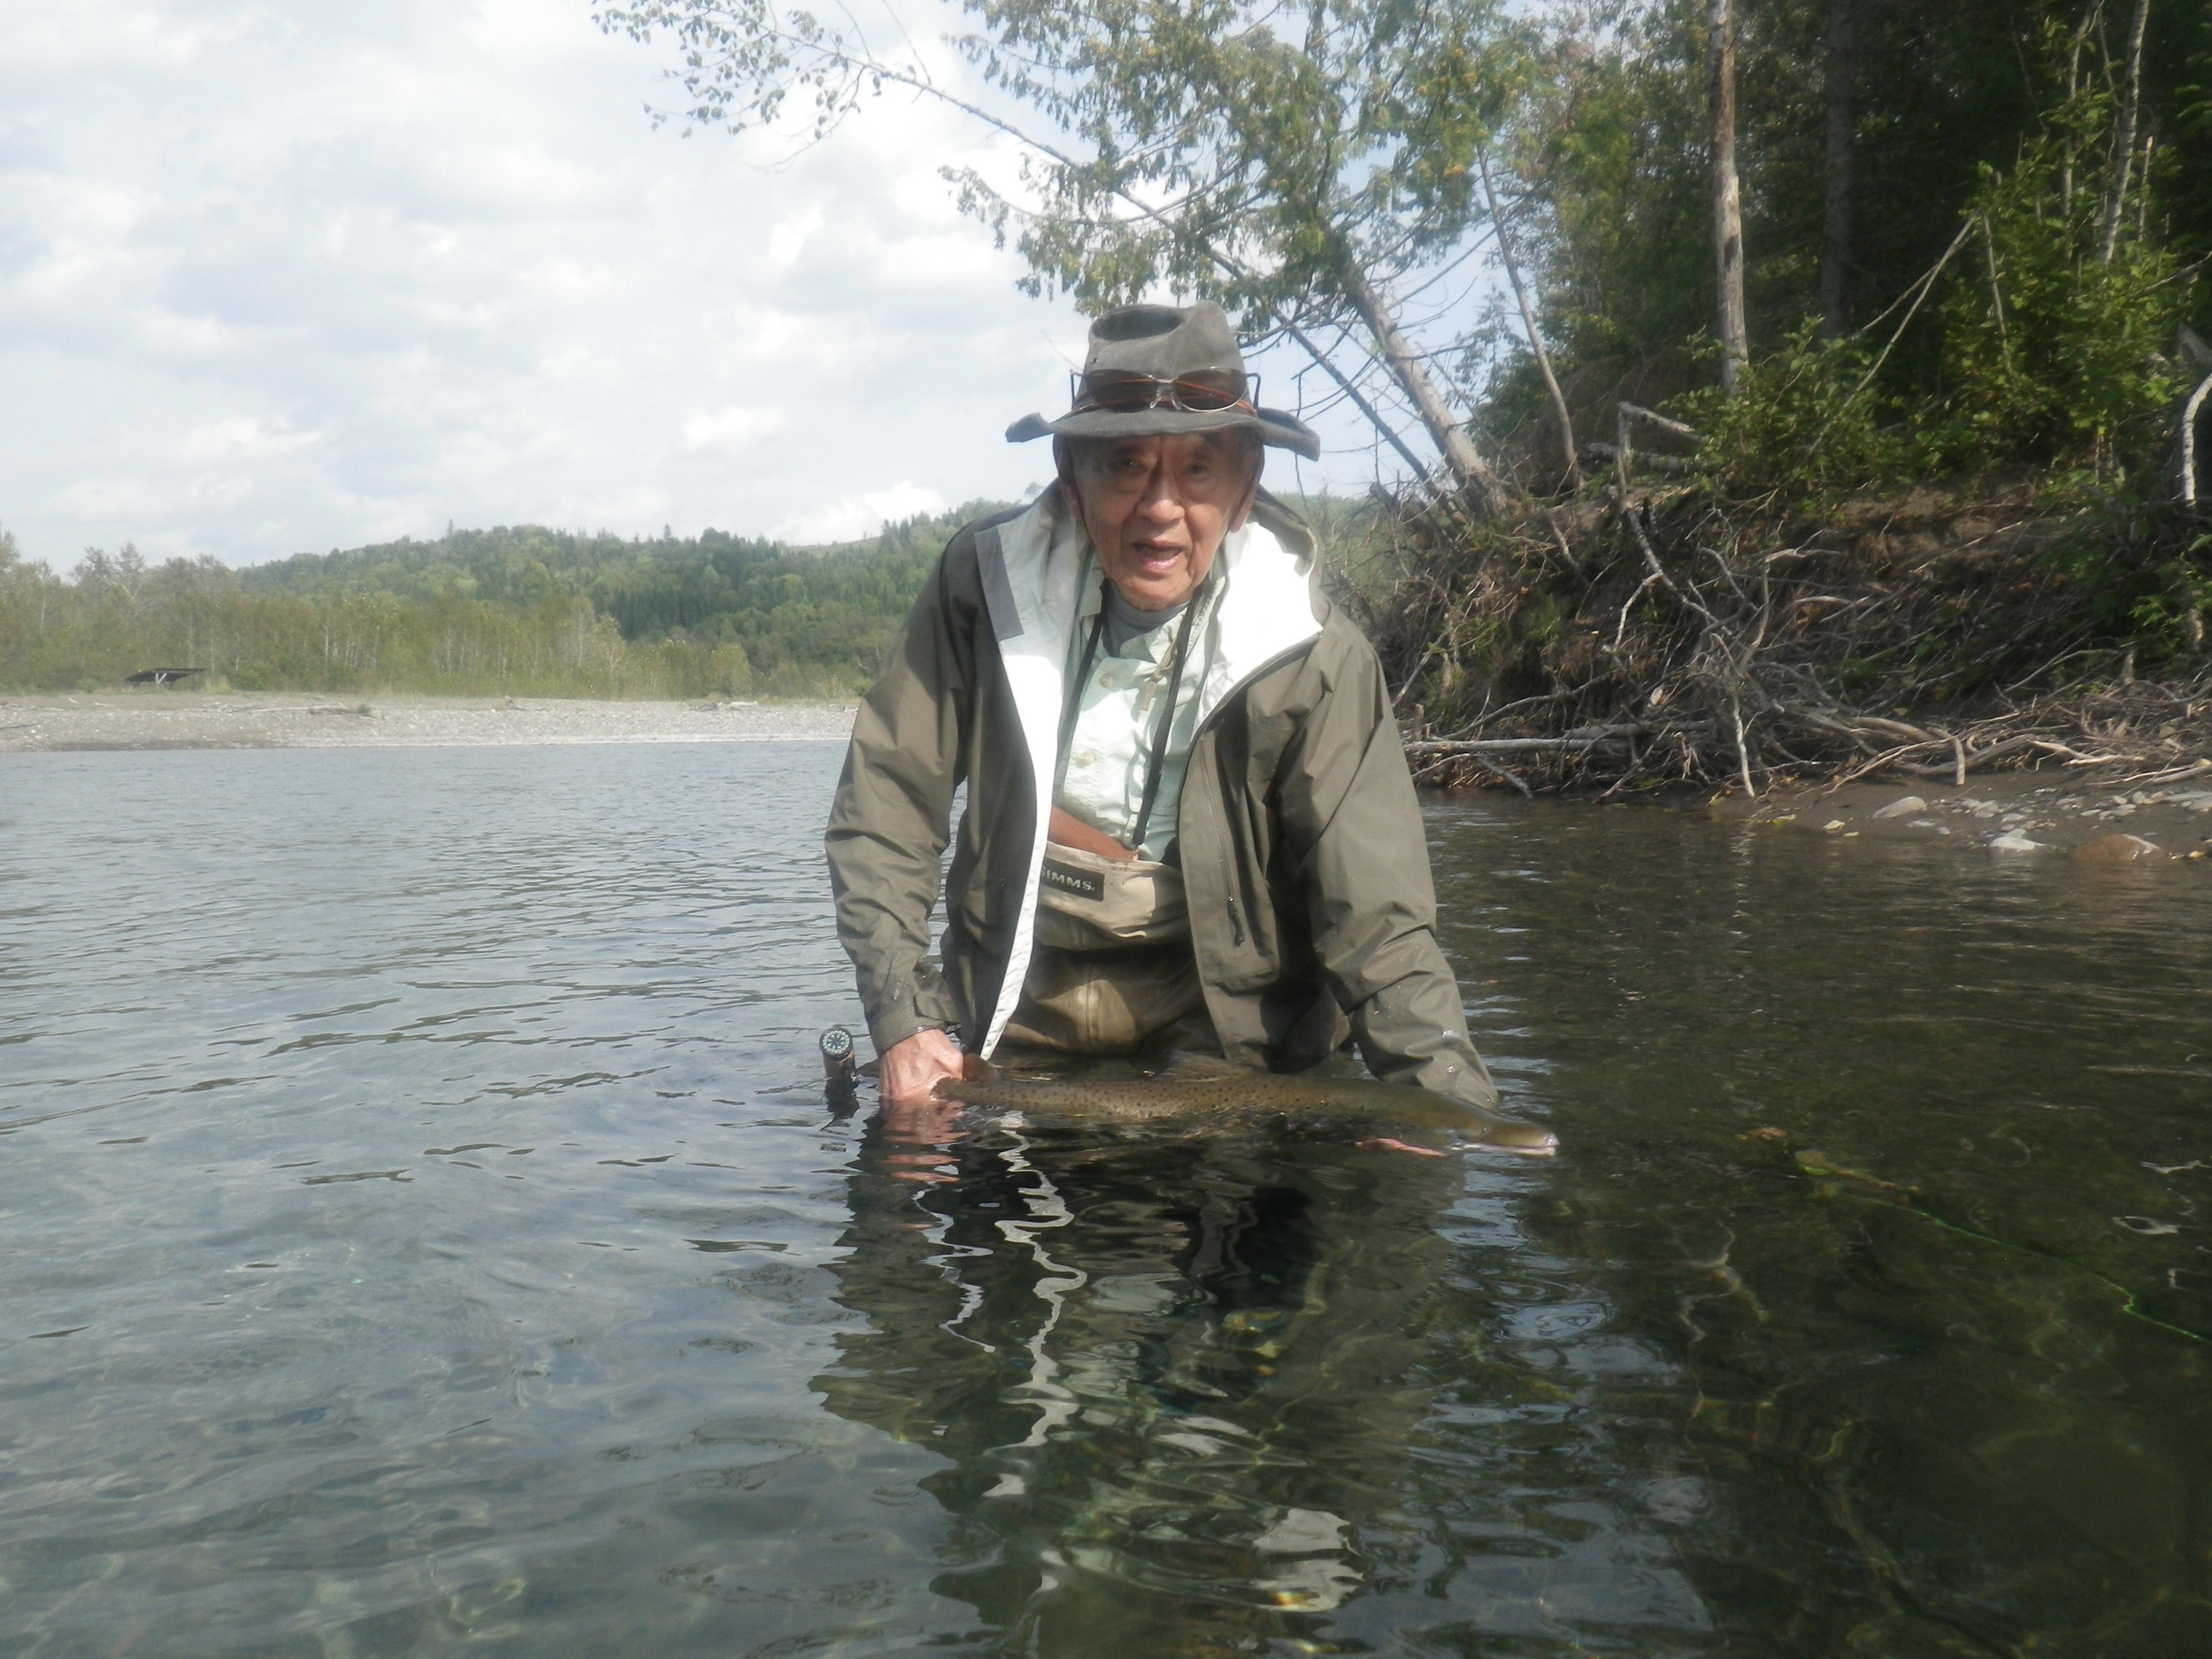 Howard Suzuki should be an inspiration to all anglers, at 87 he still wades and ansdcatches his salmon, Way to go Howard!!!